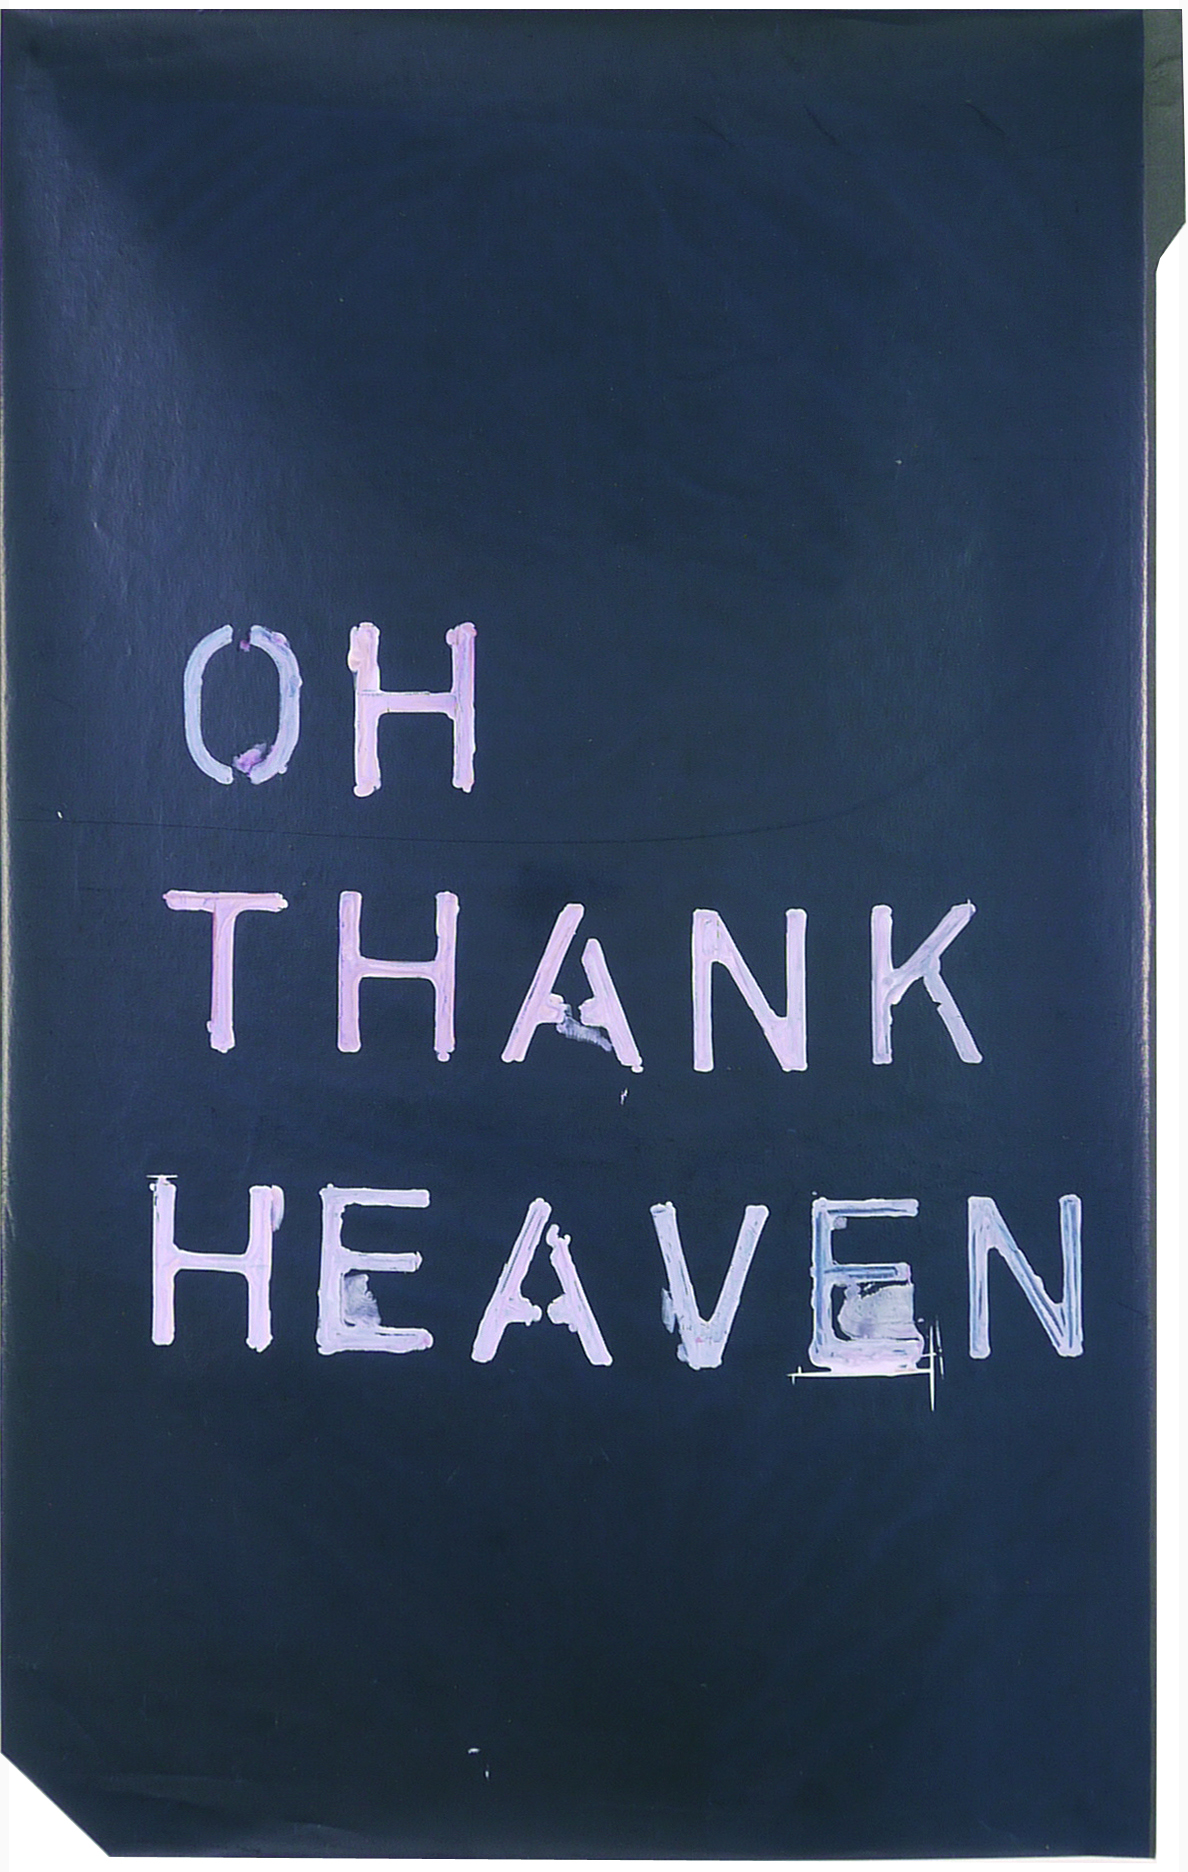 oh thank heaven  8.5 x 14 inches  jiffy on carbon paper  ed. 3